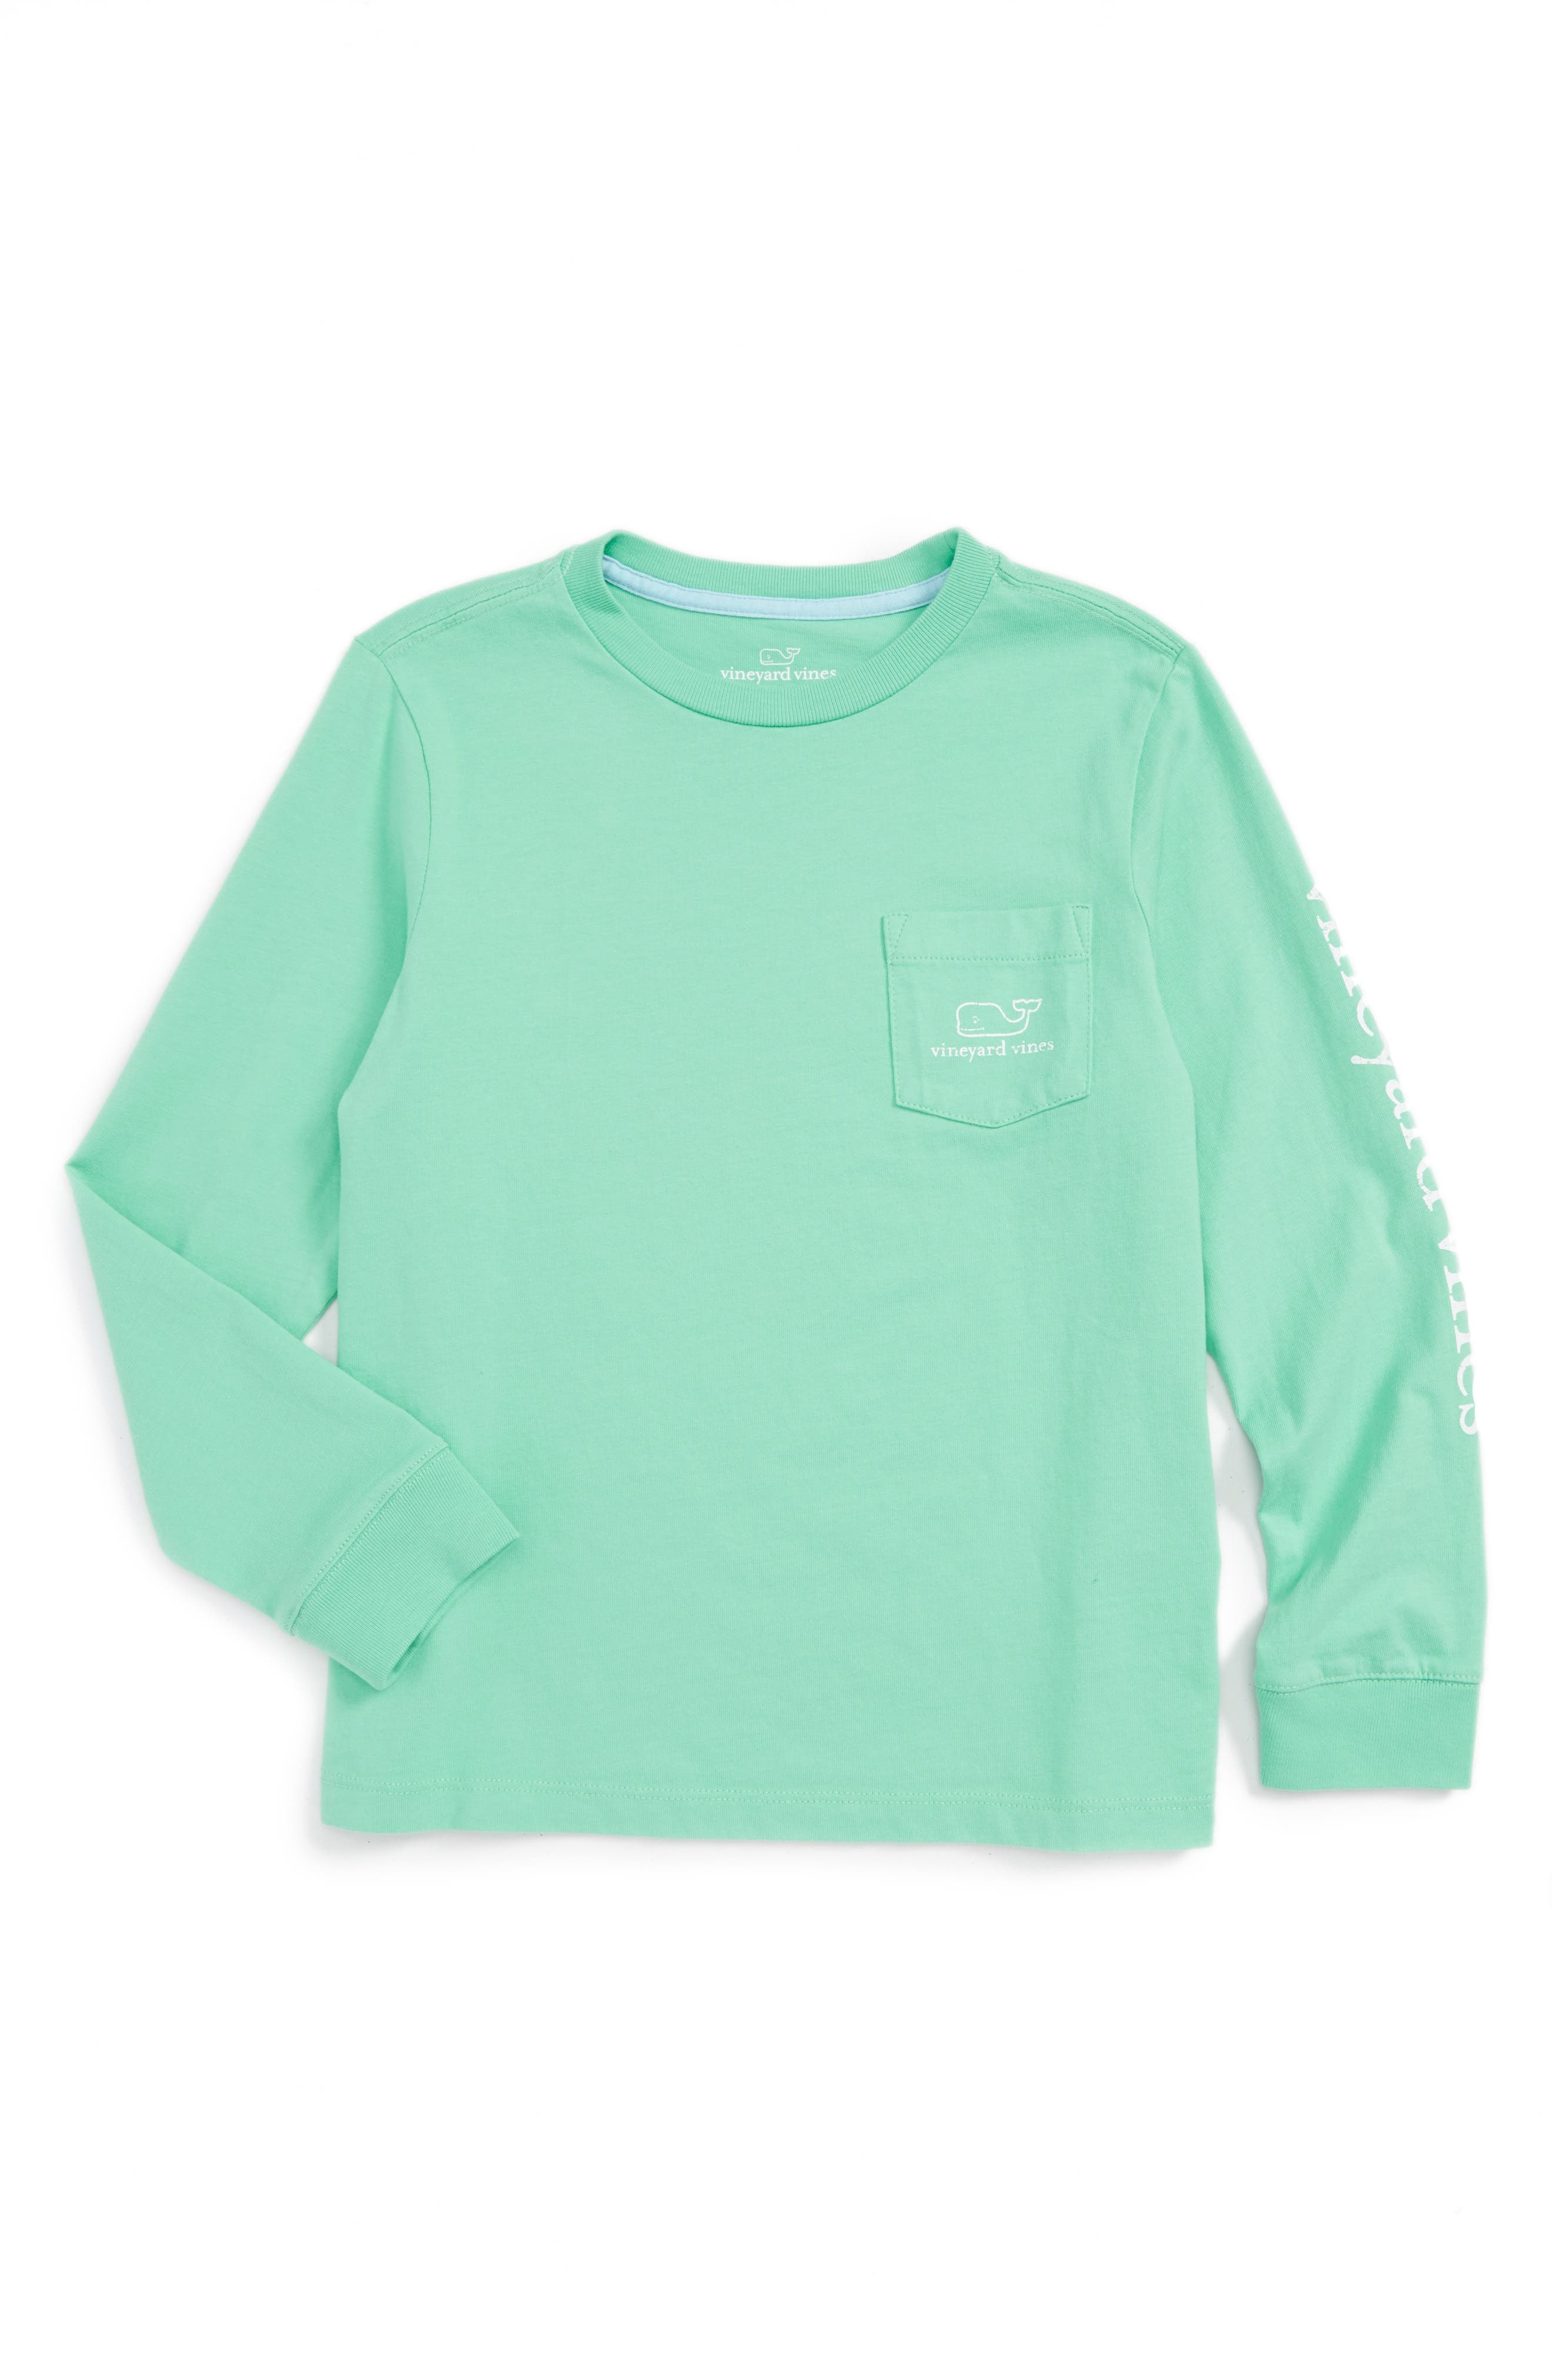 VINEYARD VINES 'Vintage Whale' Graphic Long Sleeve T-Shirt